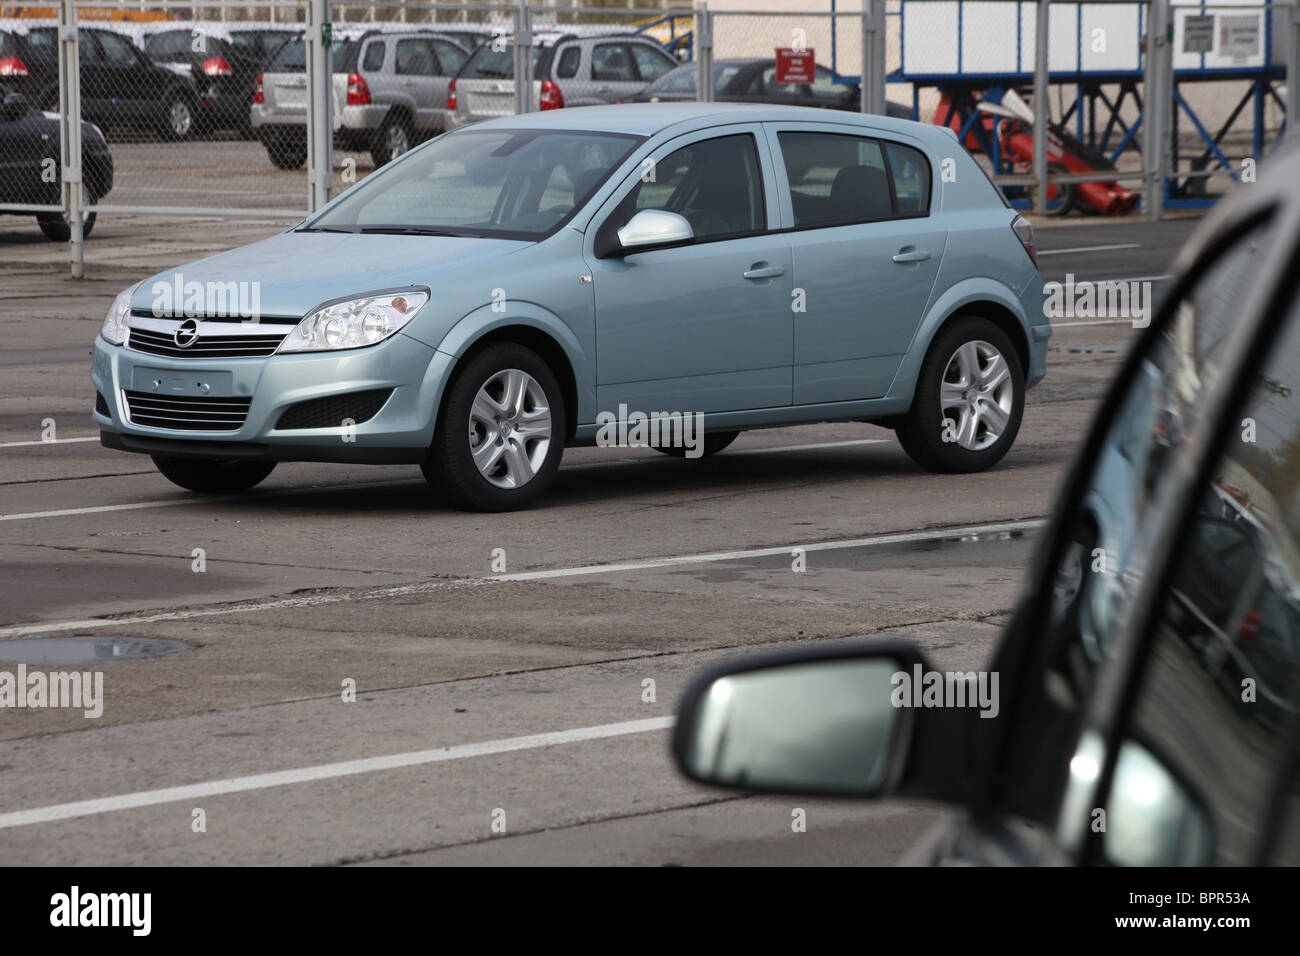 Opel Russia production begins - Stock Image